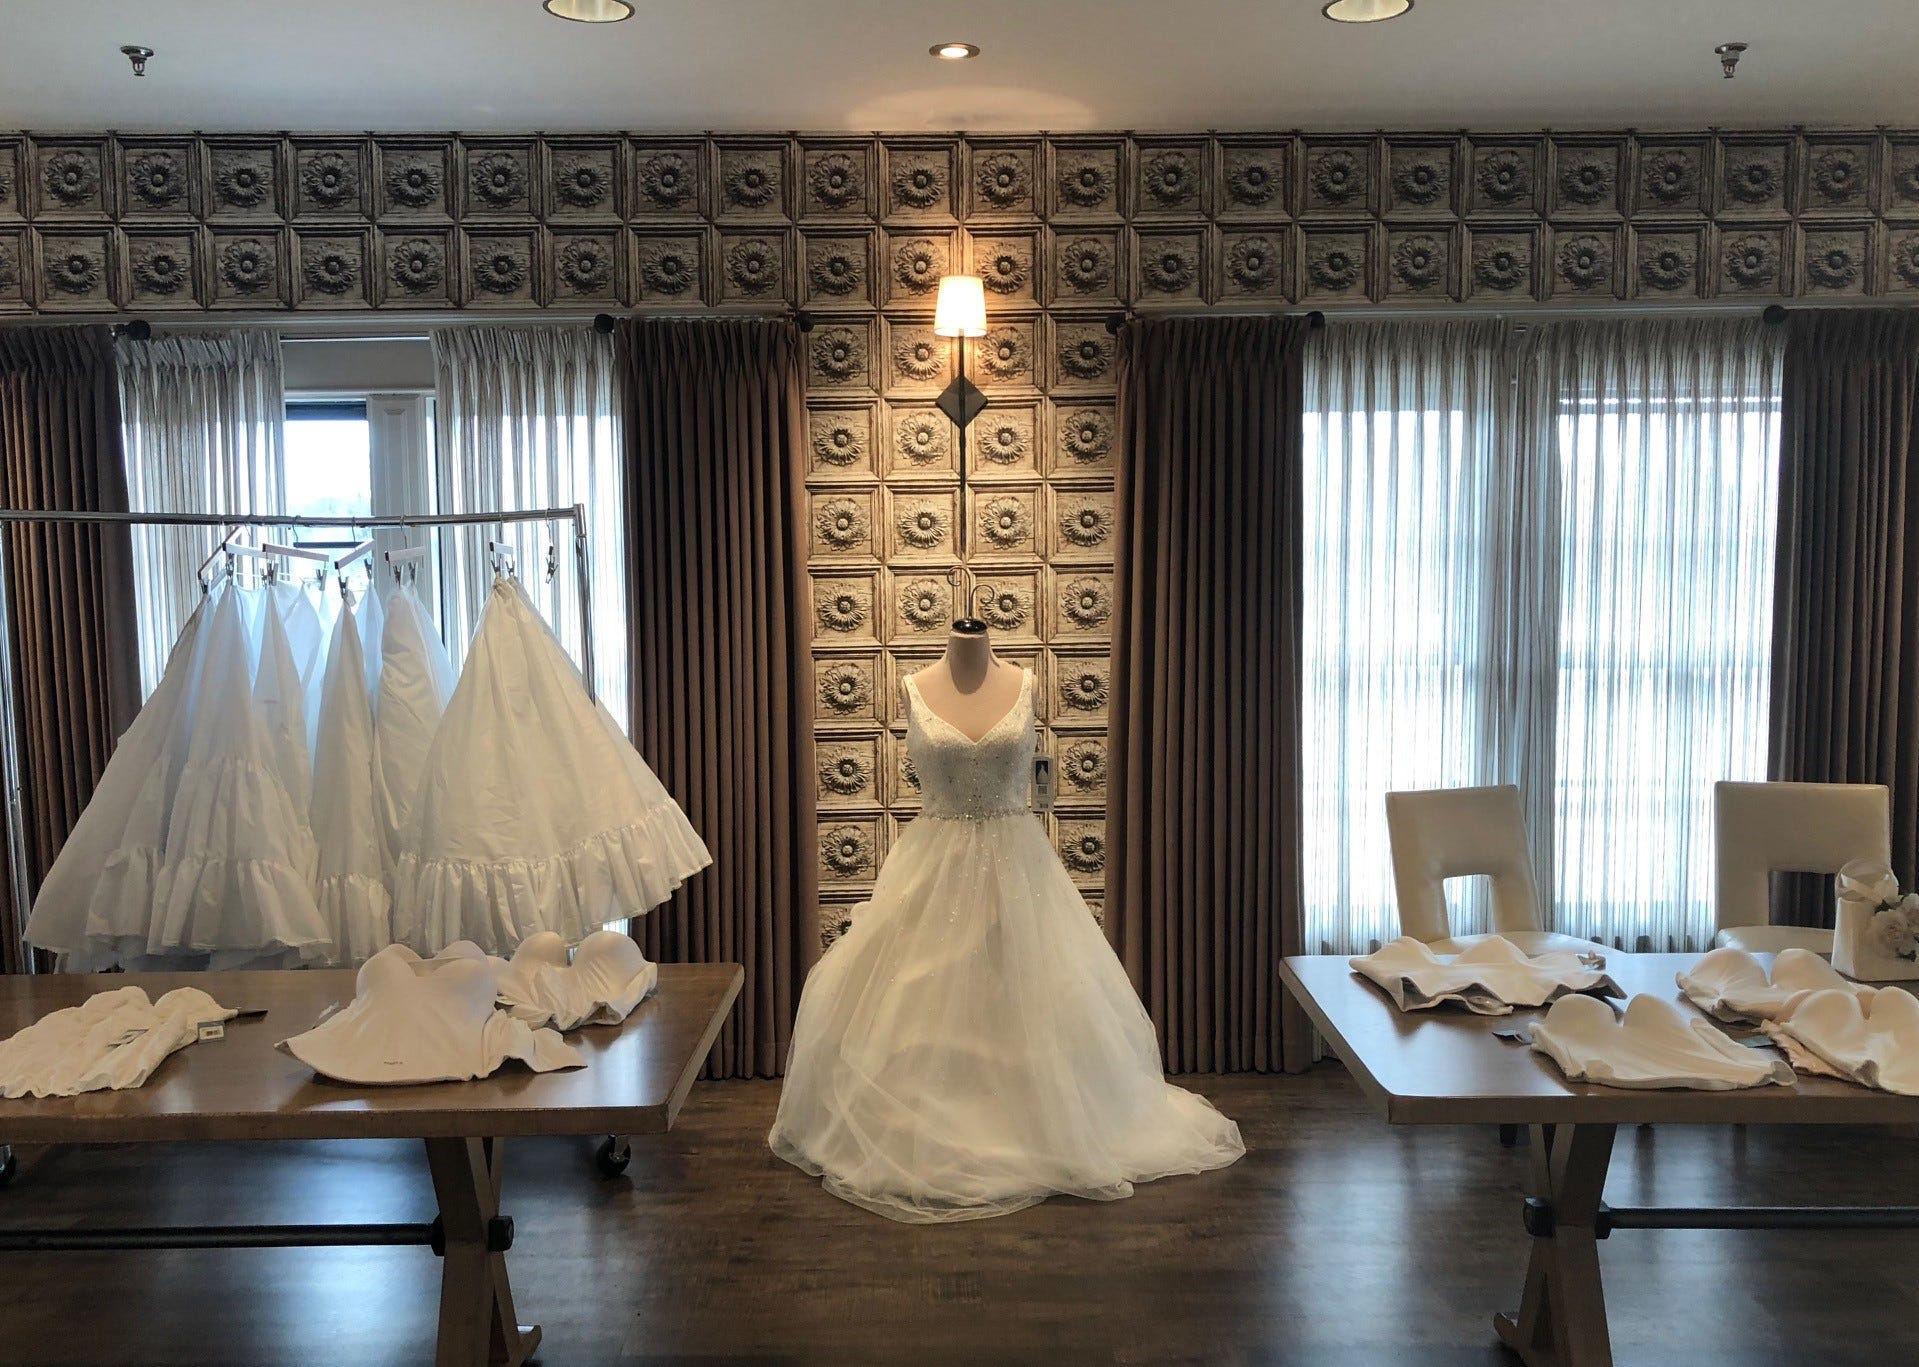 High End Bridal Gowns From Bankrupt Store Donated To Brides With Veteran Ties In Camden County